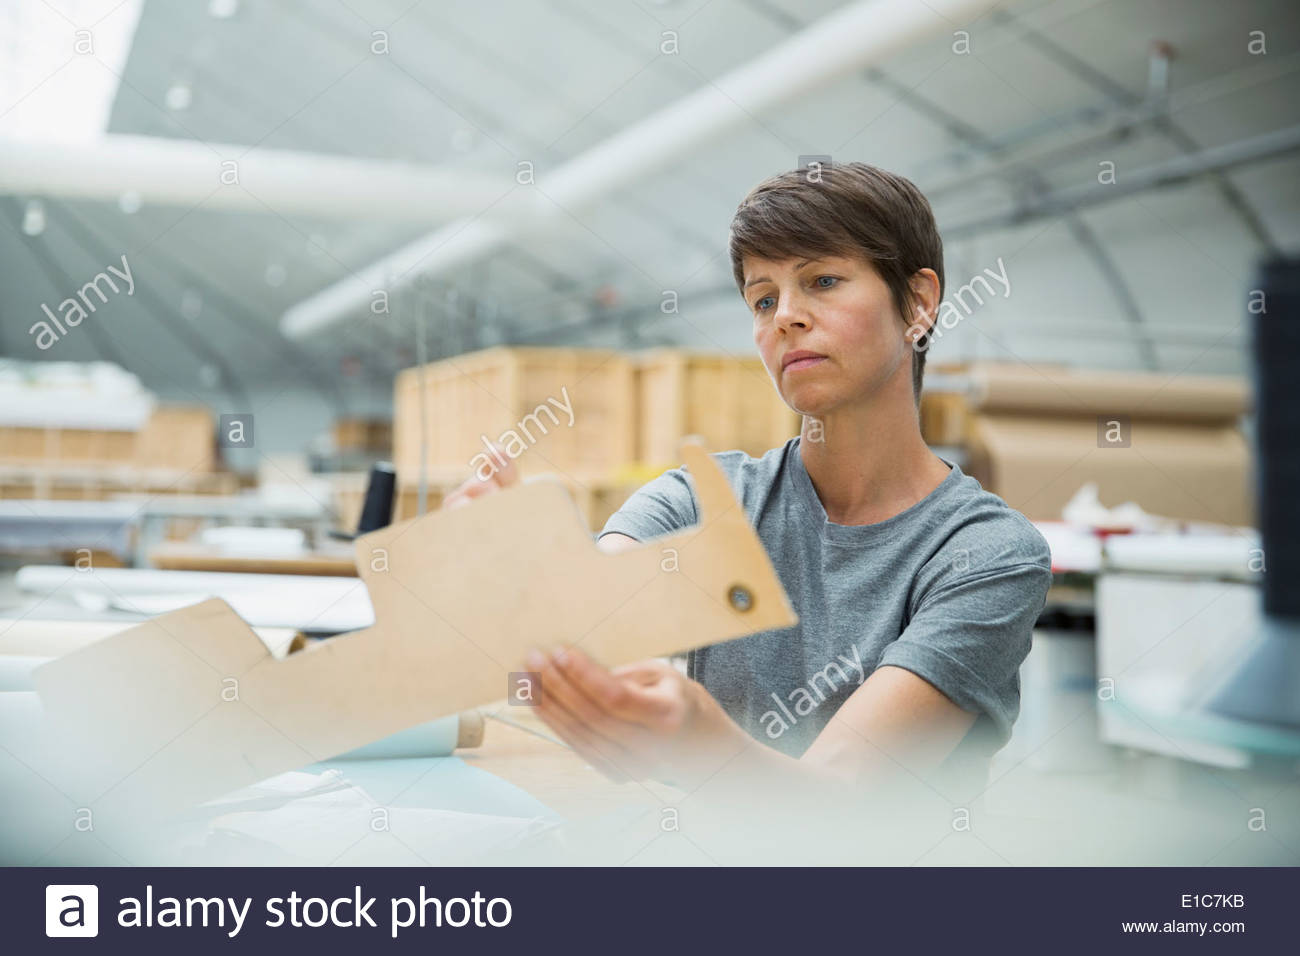 Worker examining form in textile manufacturing plant - Stock Image